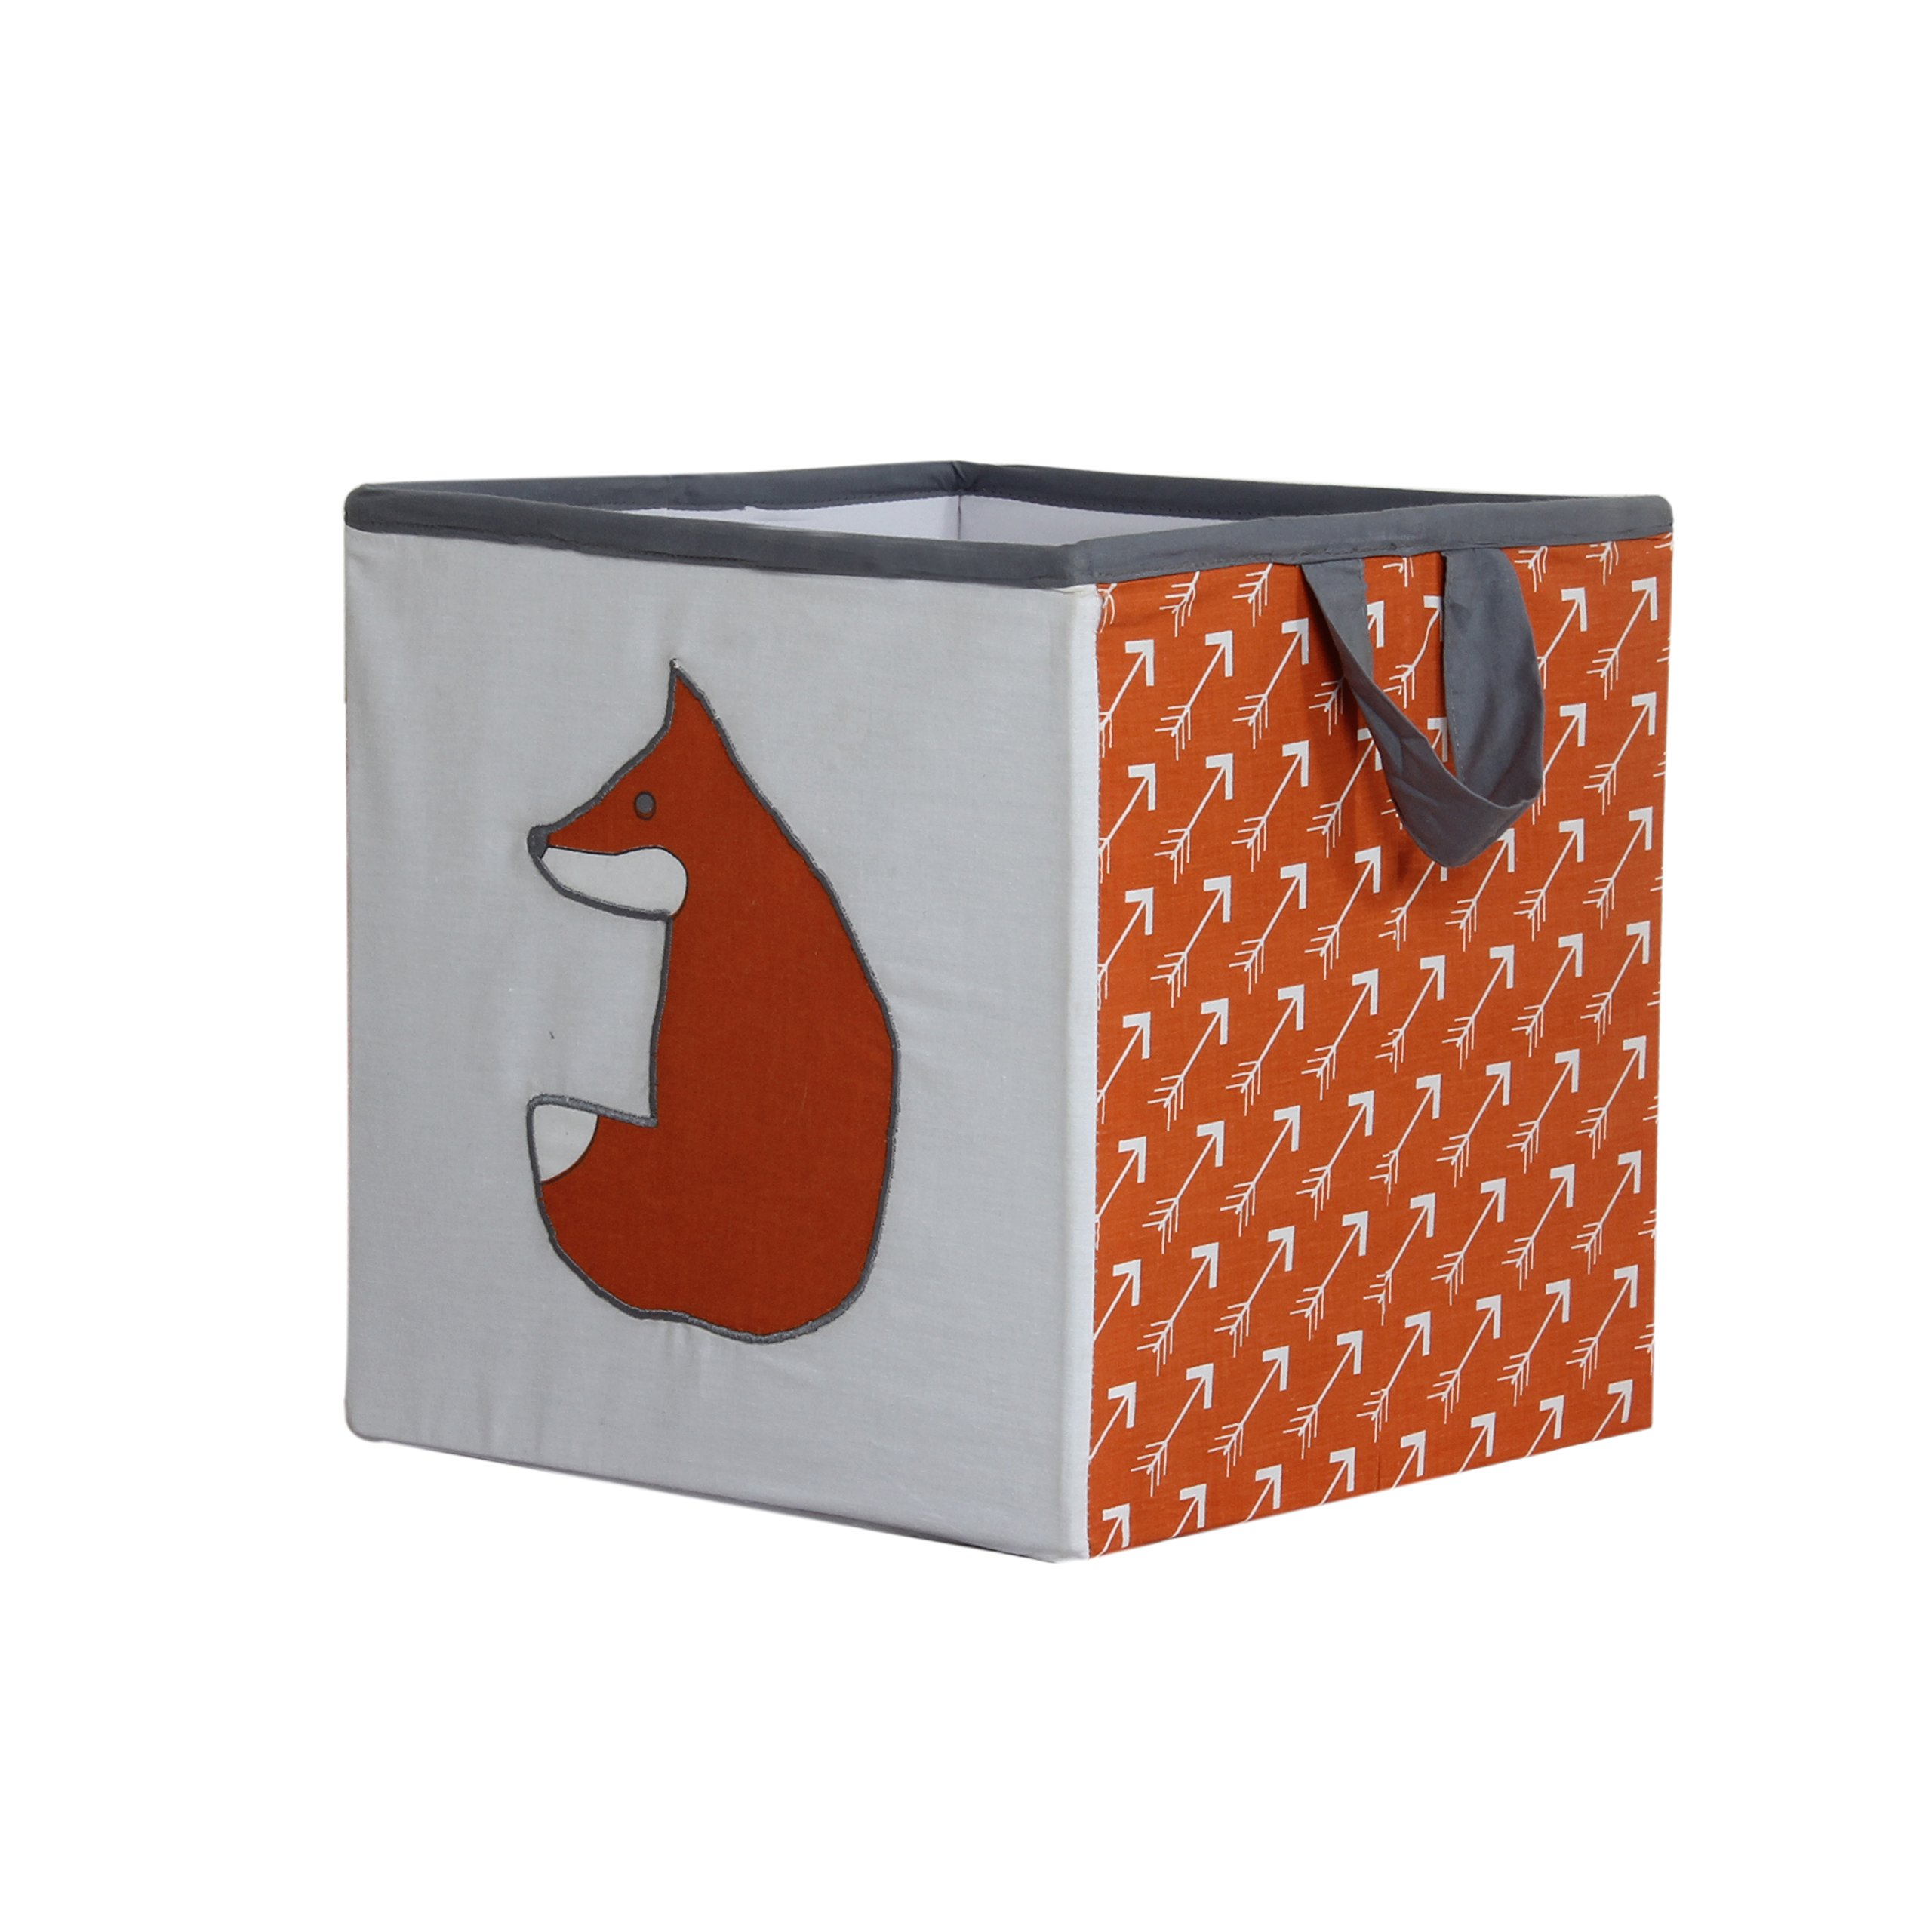 Bacati Playful Foxs Storage Box, Orange/Grey, Small